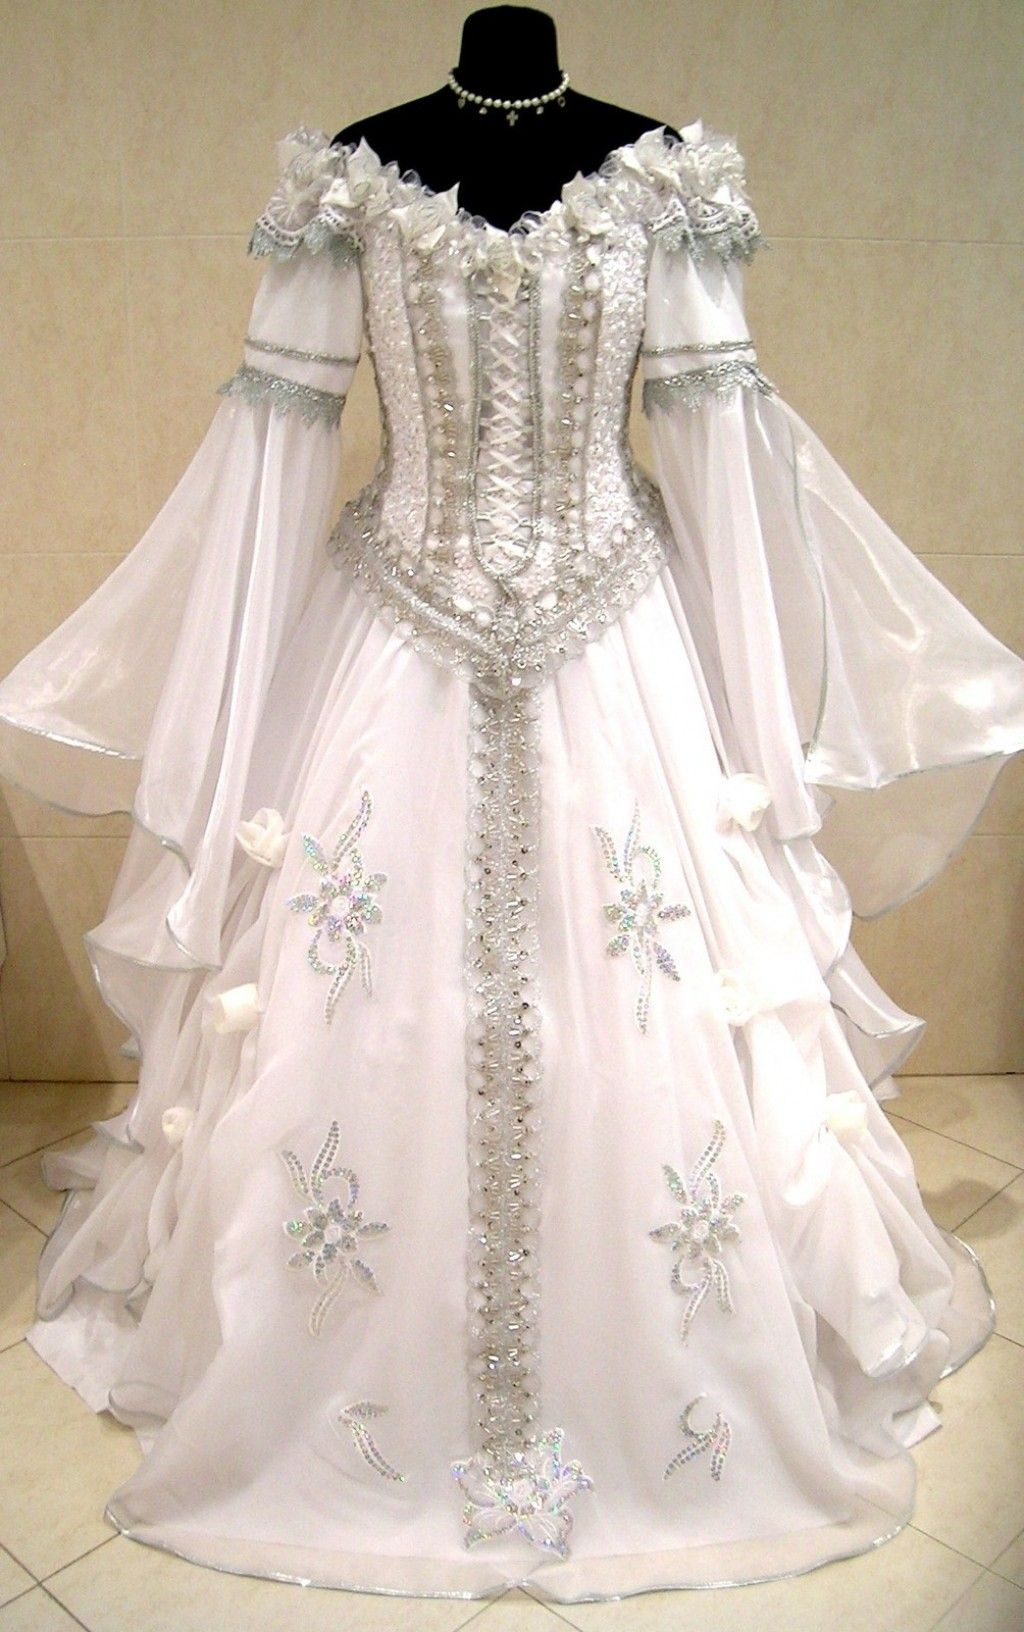 Thrift store wedding dress  What is old is new again A Medievil Theme Wedding  Pinterest